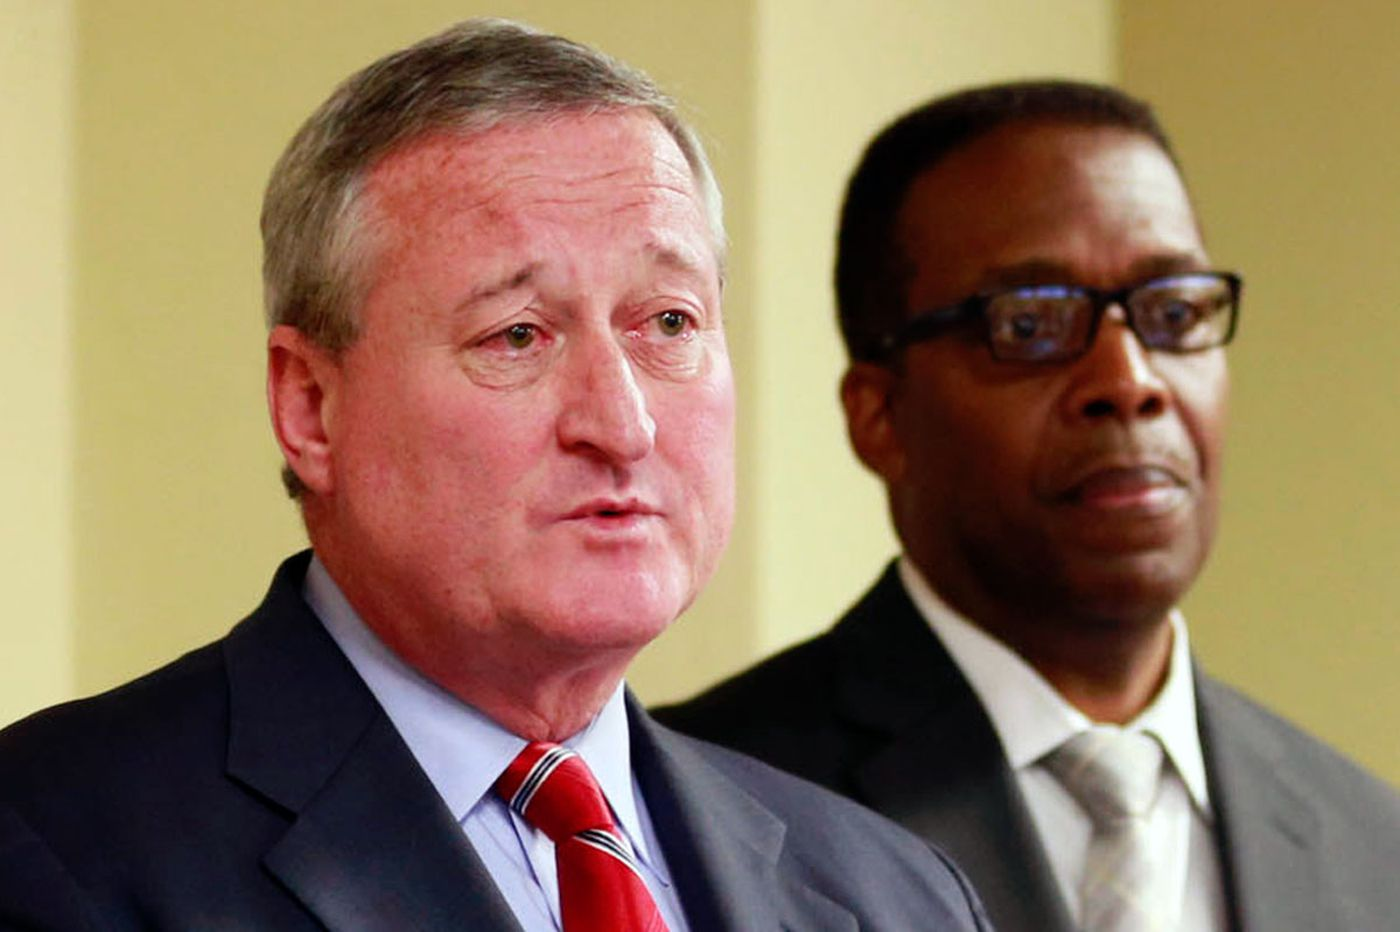 Coming soon to City Hall: The Kenney & Clarke Show